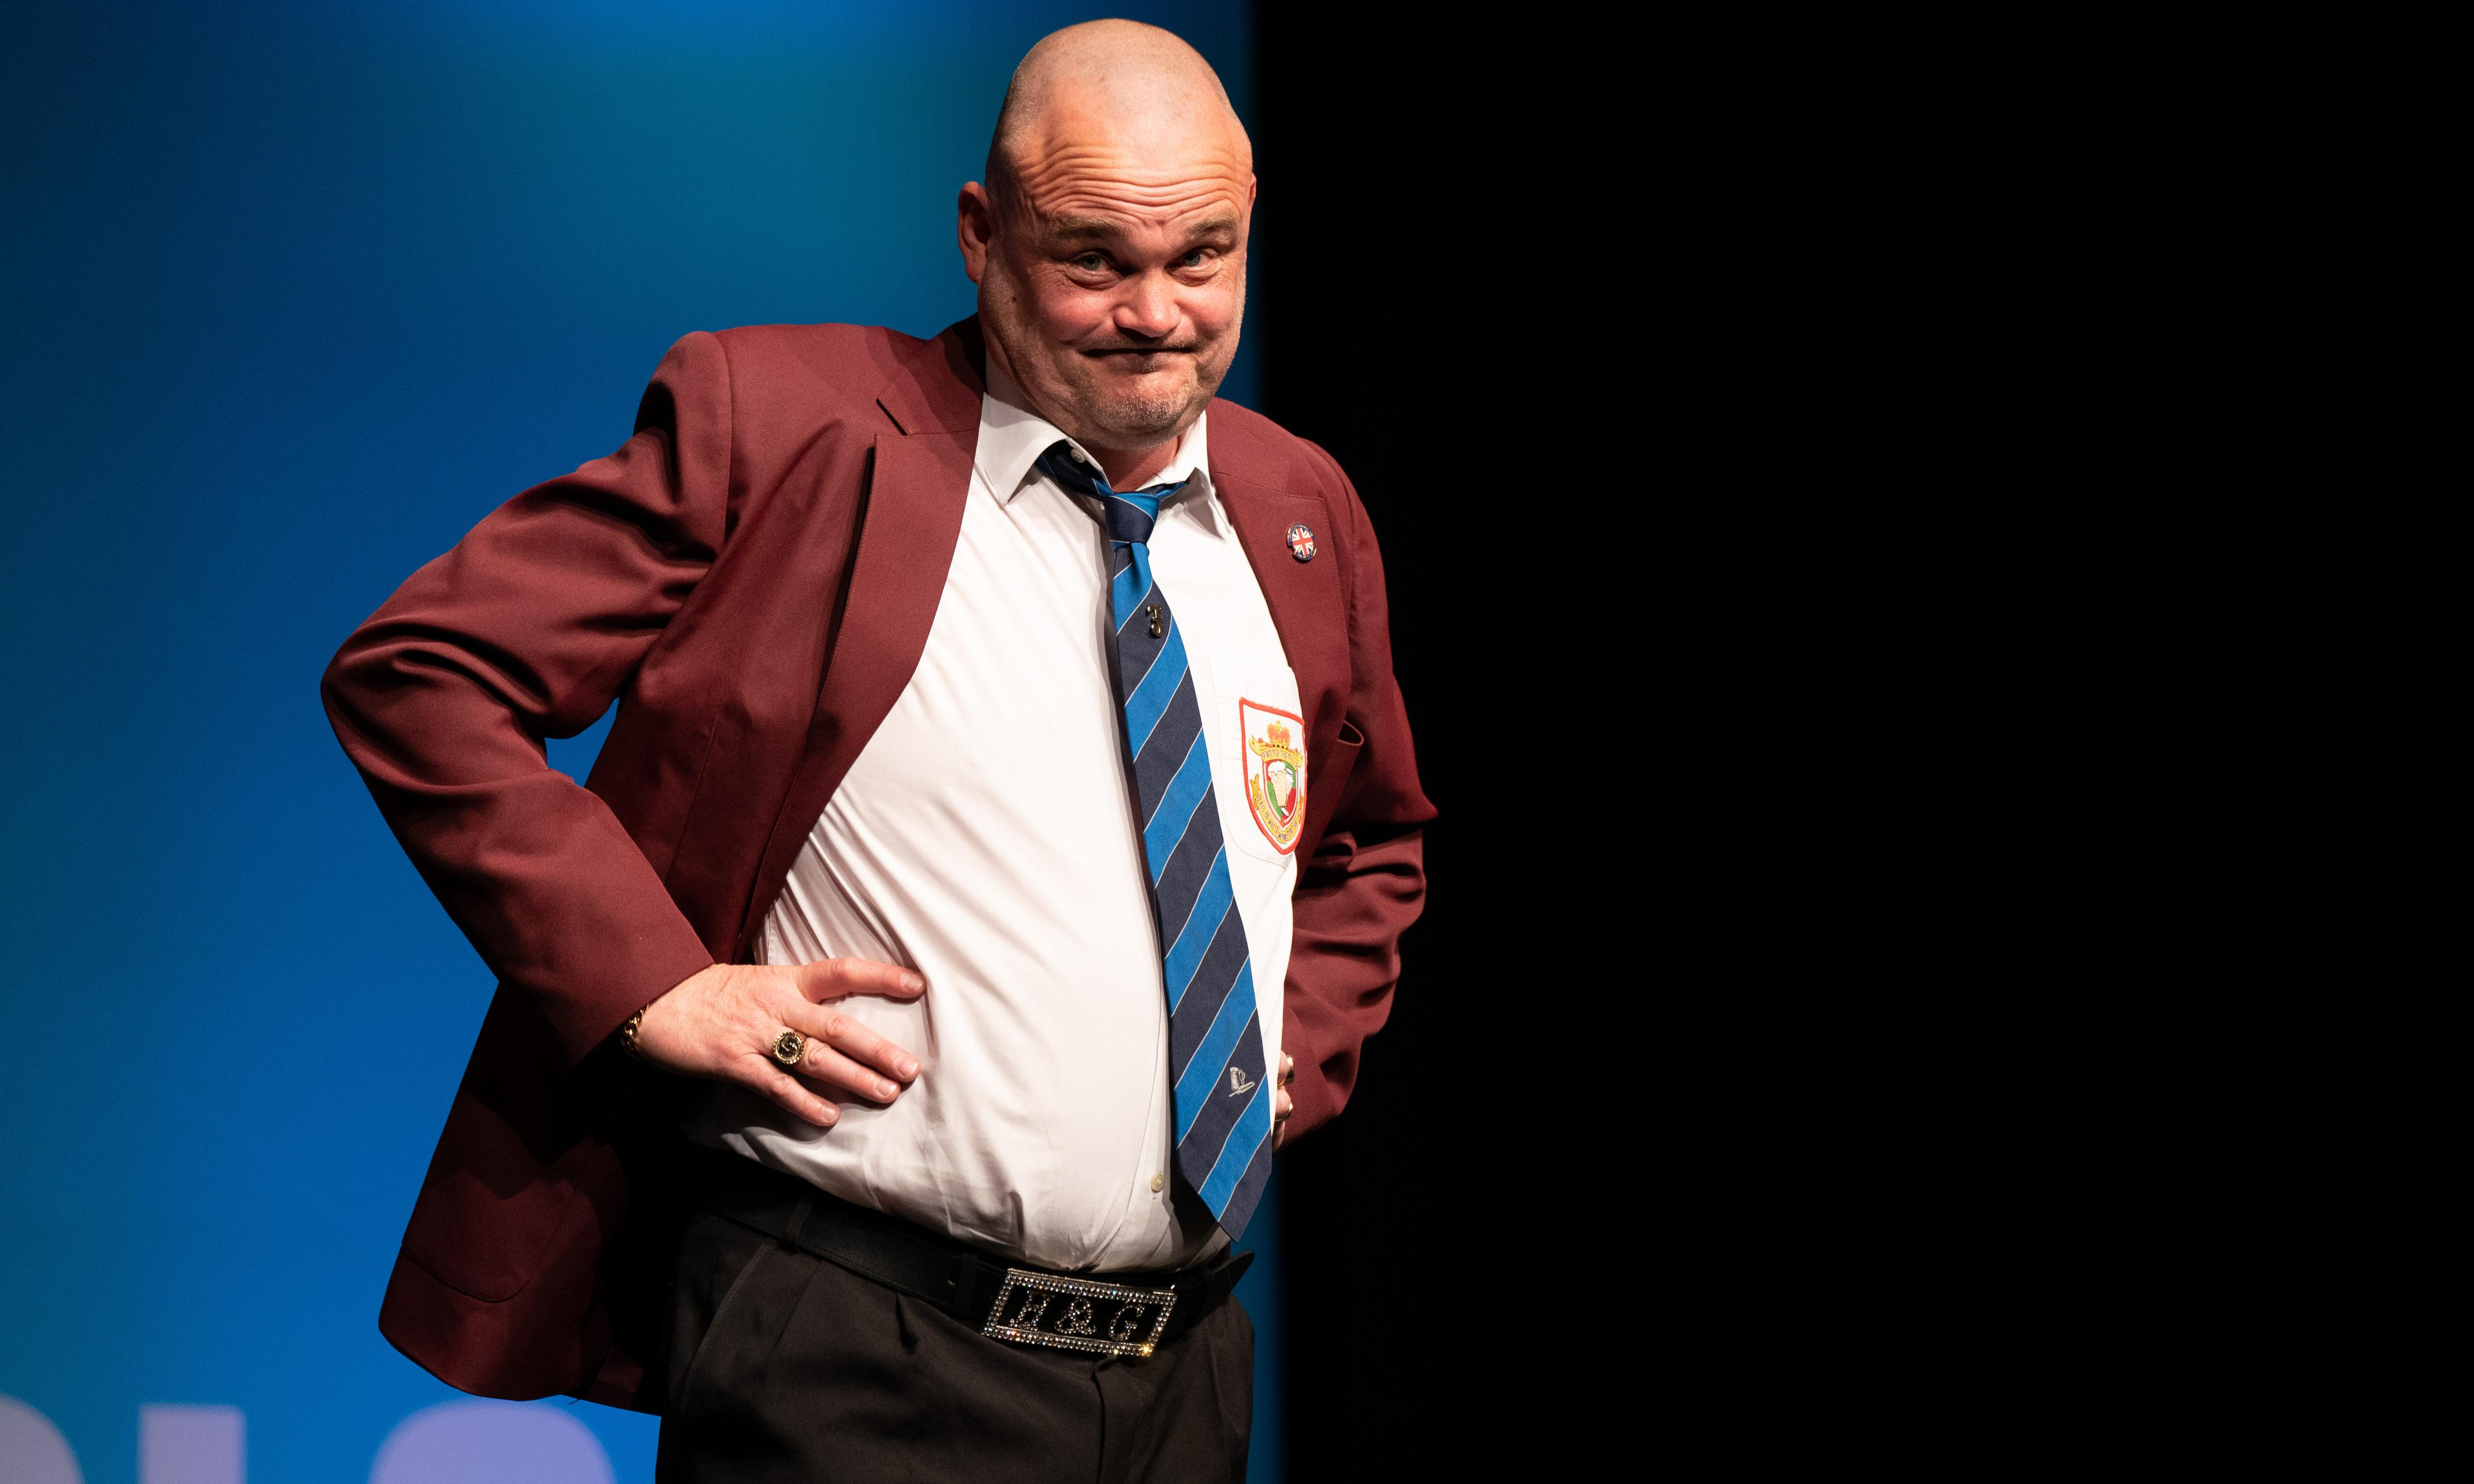 Al Murray review – the ultimate Brexiteer remains on the fence